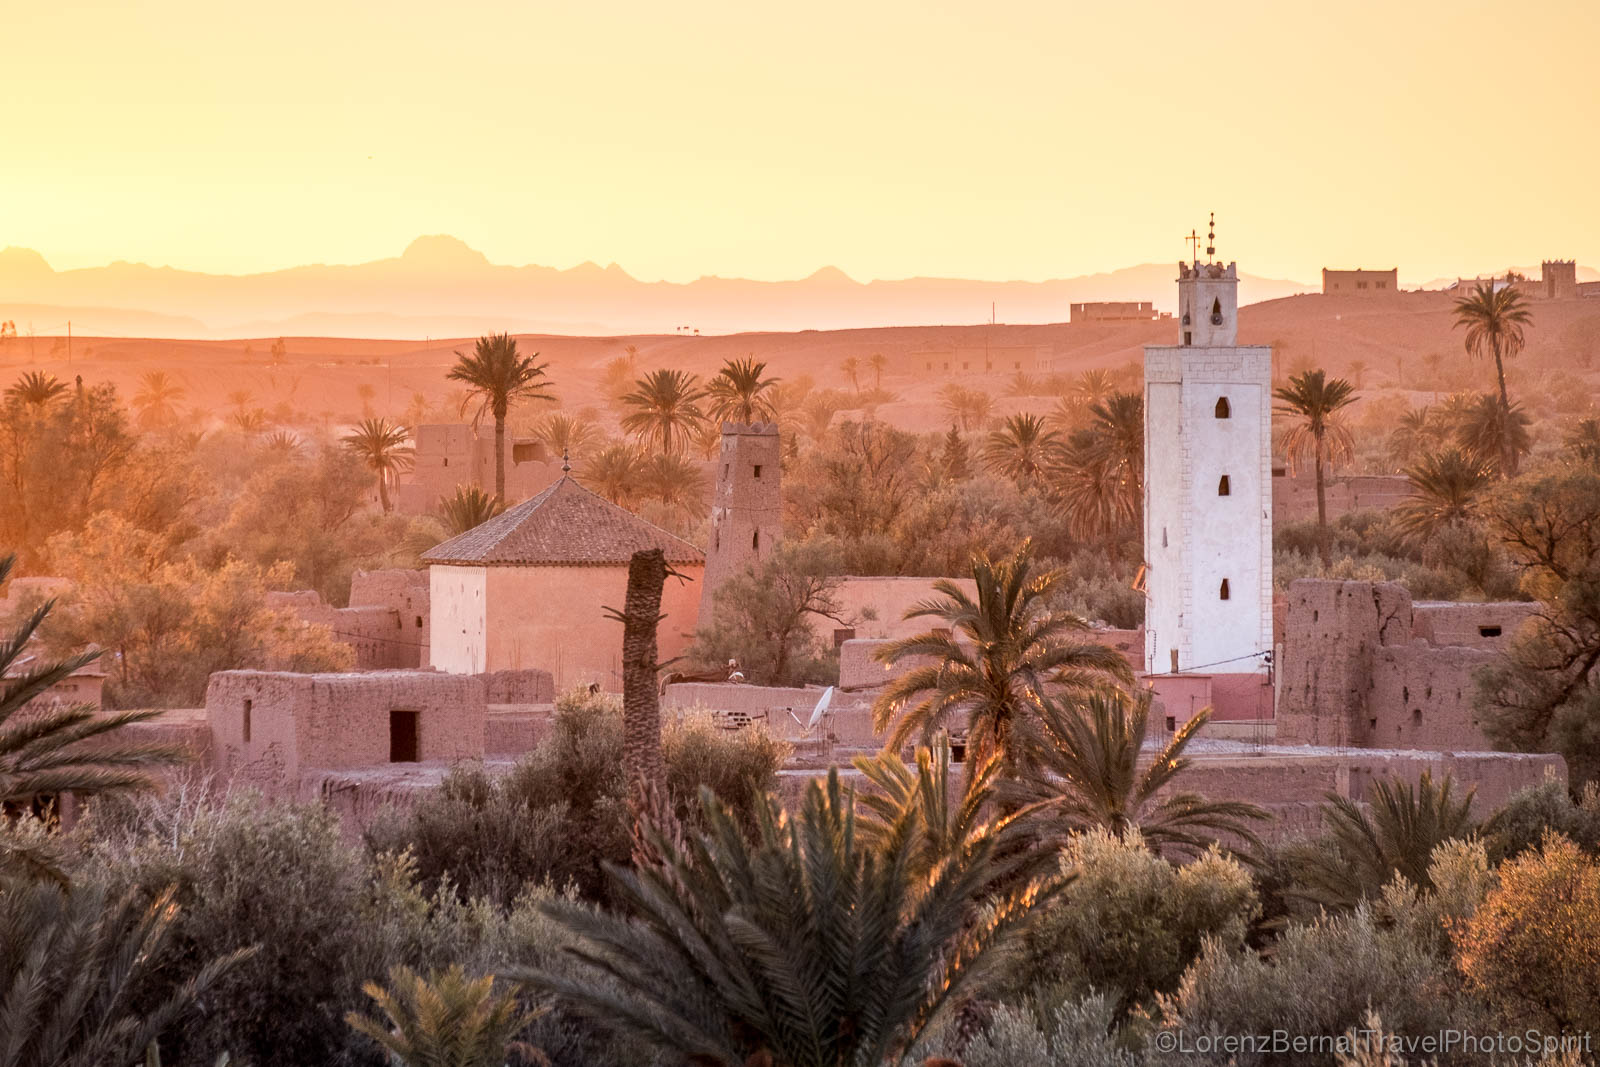 Landscape Photography of Skoura, Morocco, at sunset. Morocco photography by Lorenz Berna